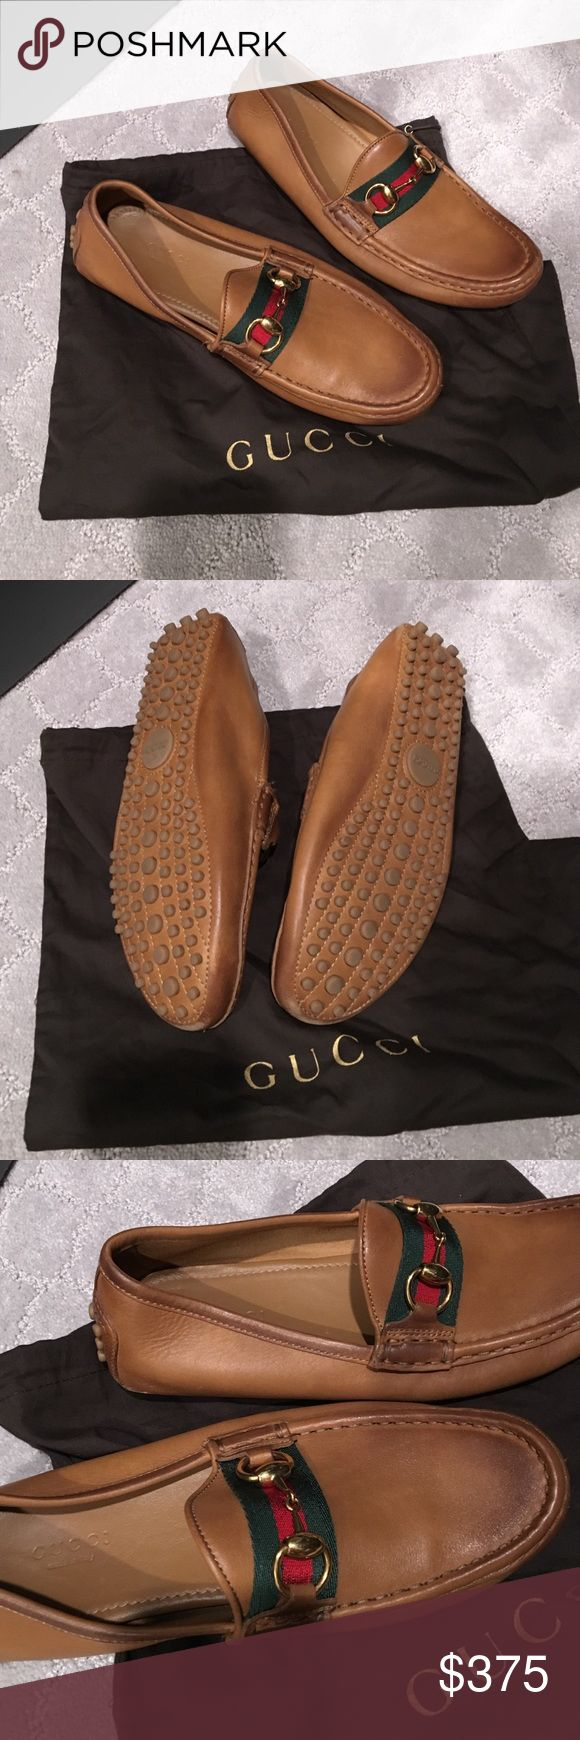 Gucci Women's Damo Driving Loafer size 36.5 Worn once Gucci women's damo driving loafers size 36.5... these shoes are my prize possession but unfortunately don't fit my big feet.. Comes with dust bag. Make an offer! Gucci Shoes Flats & Loafers